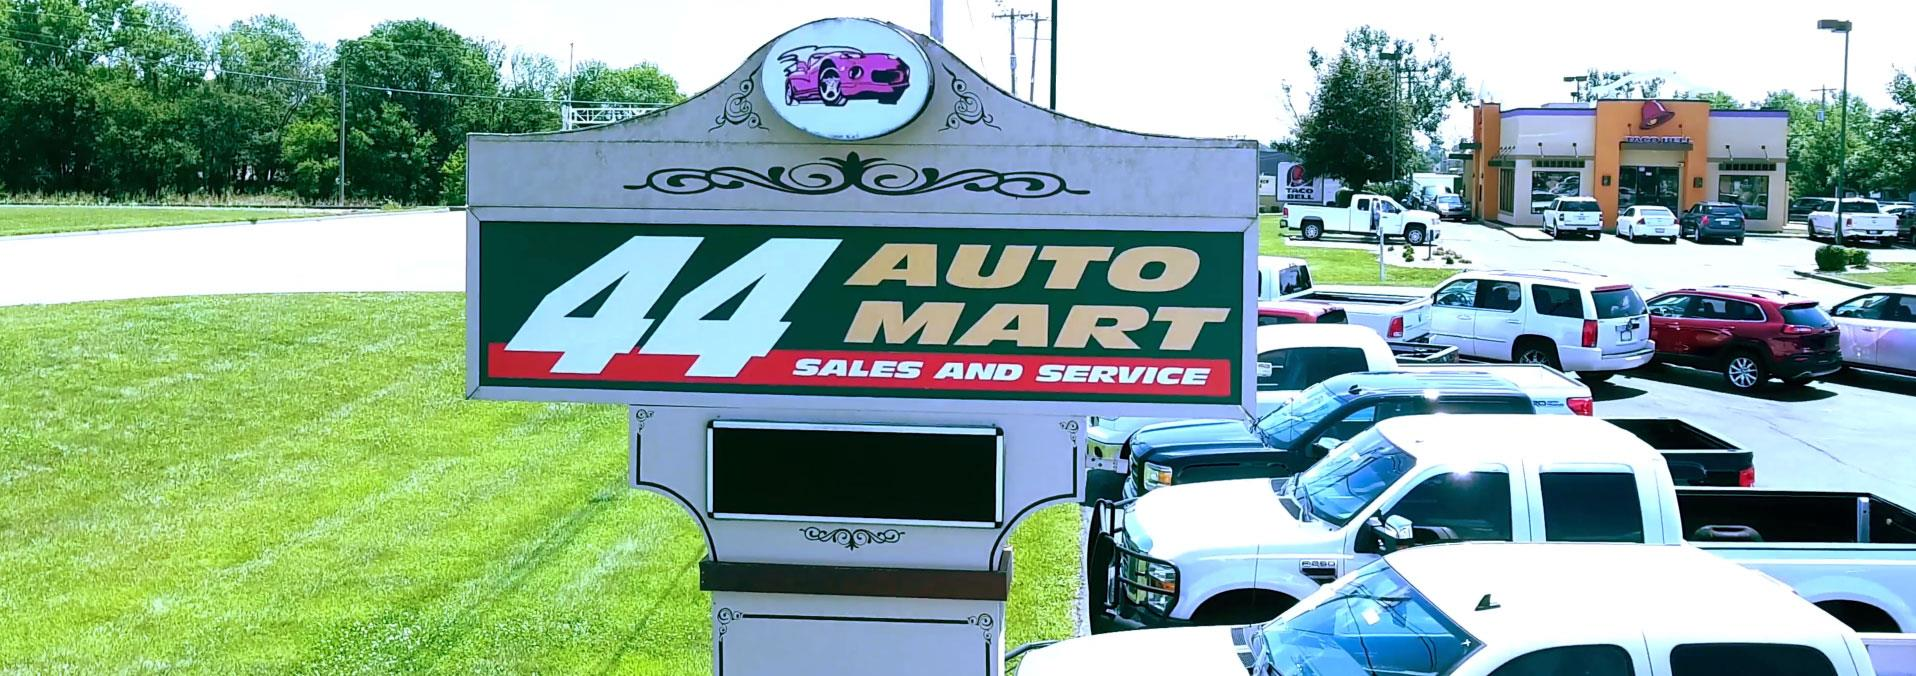 44 auto mart - bardstown frost bardstown ky | new & used cars trucks